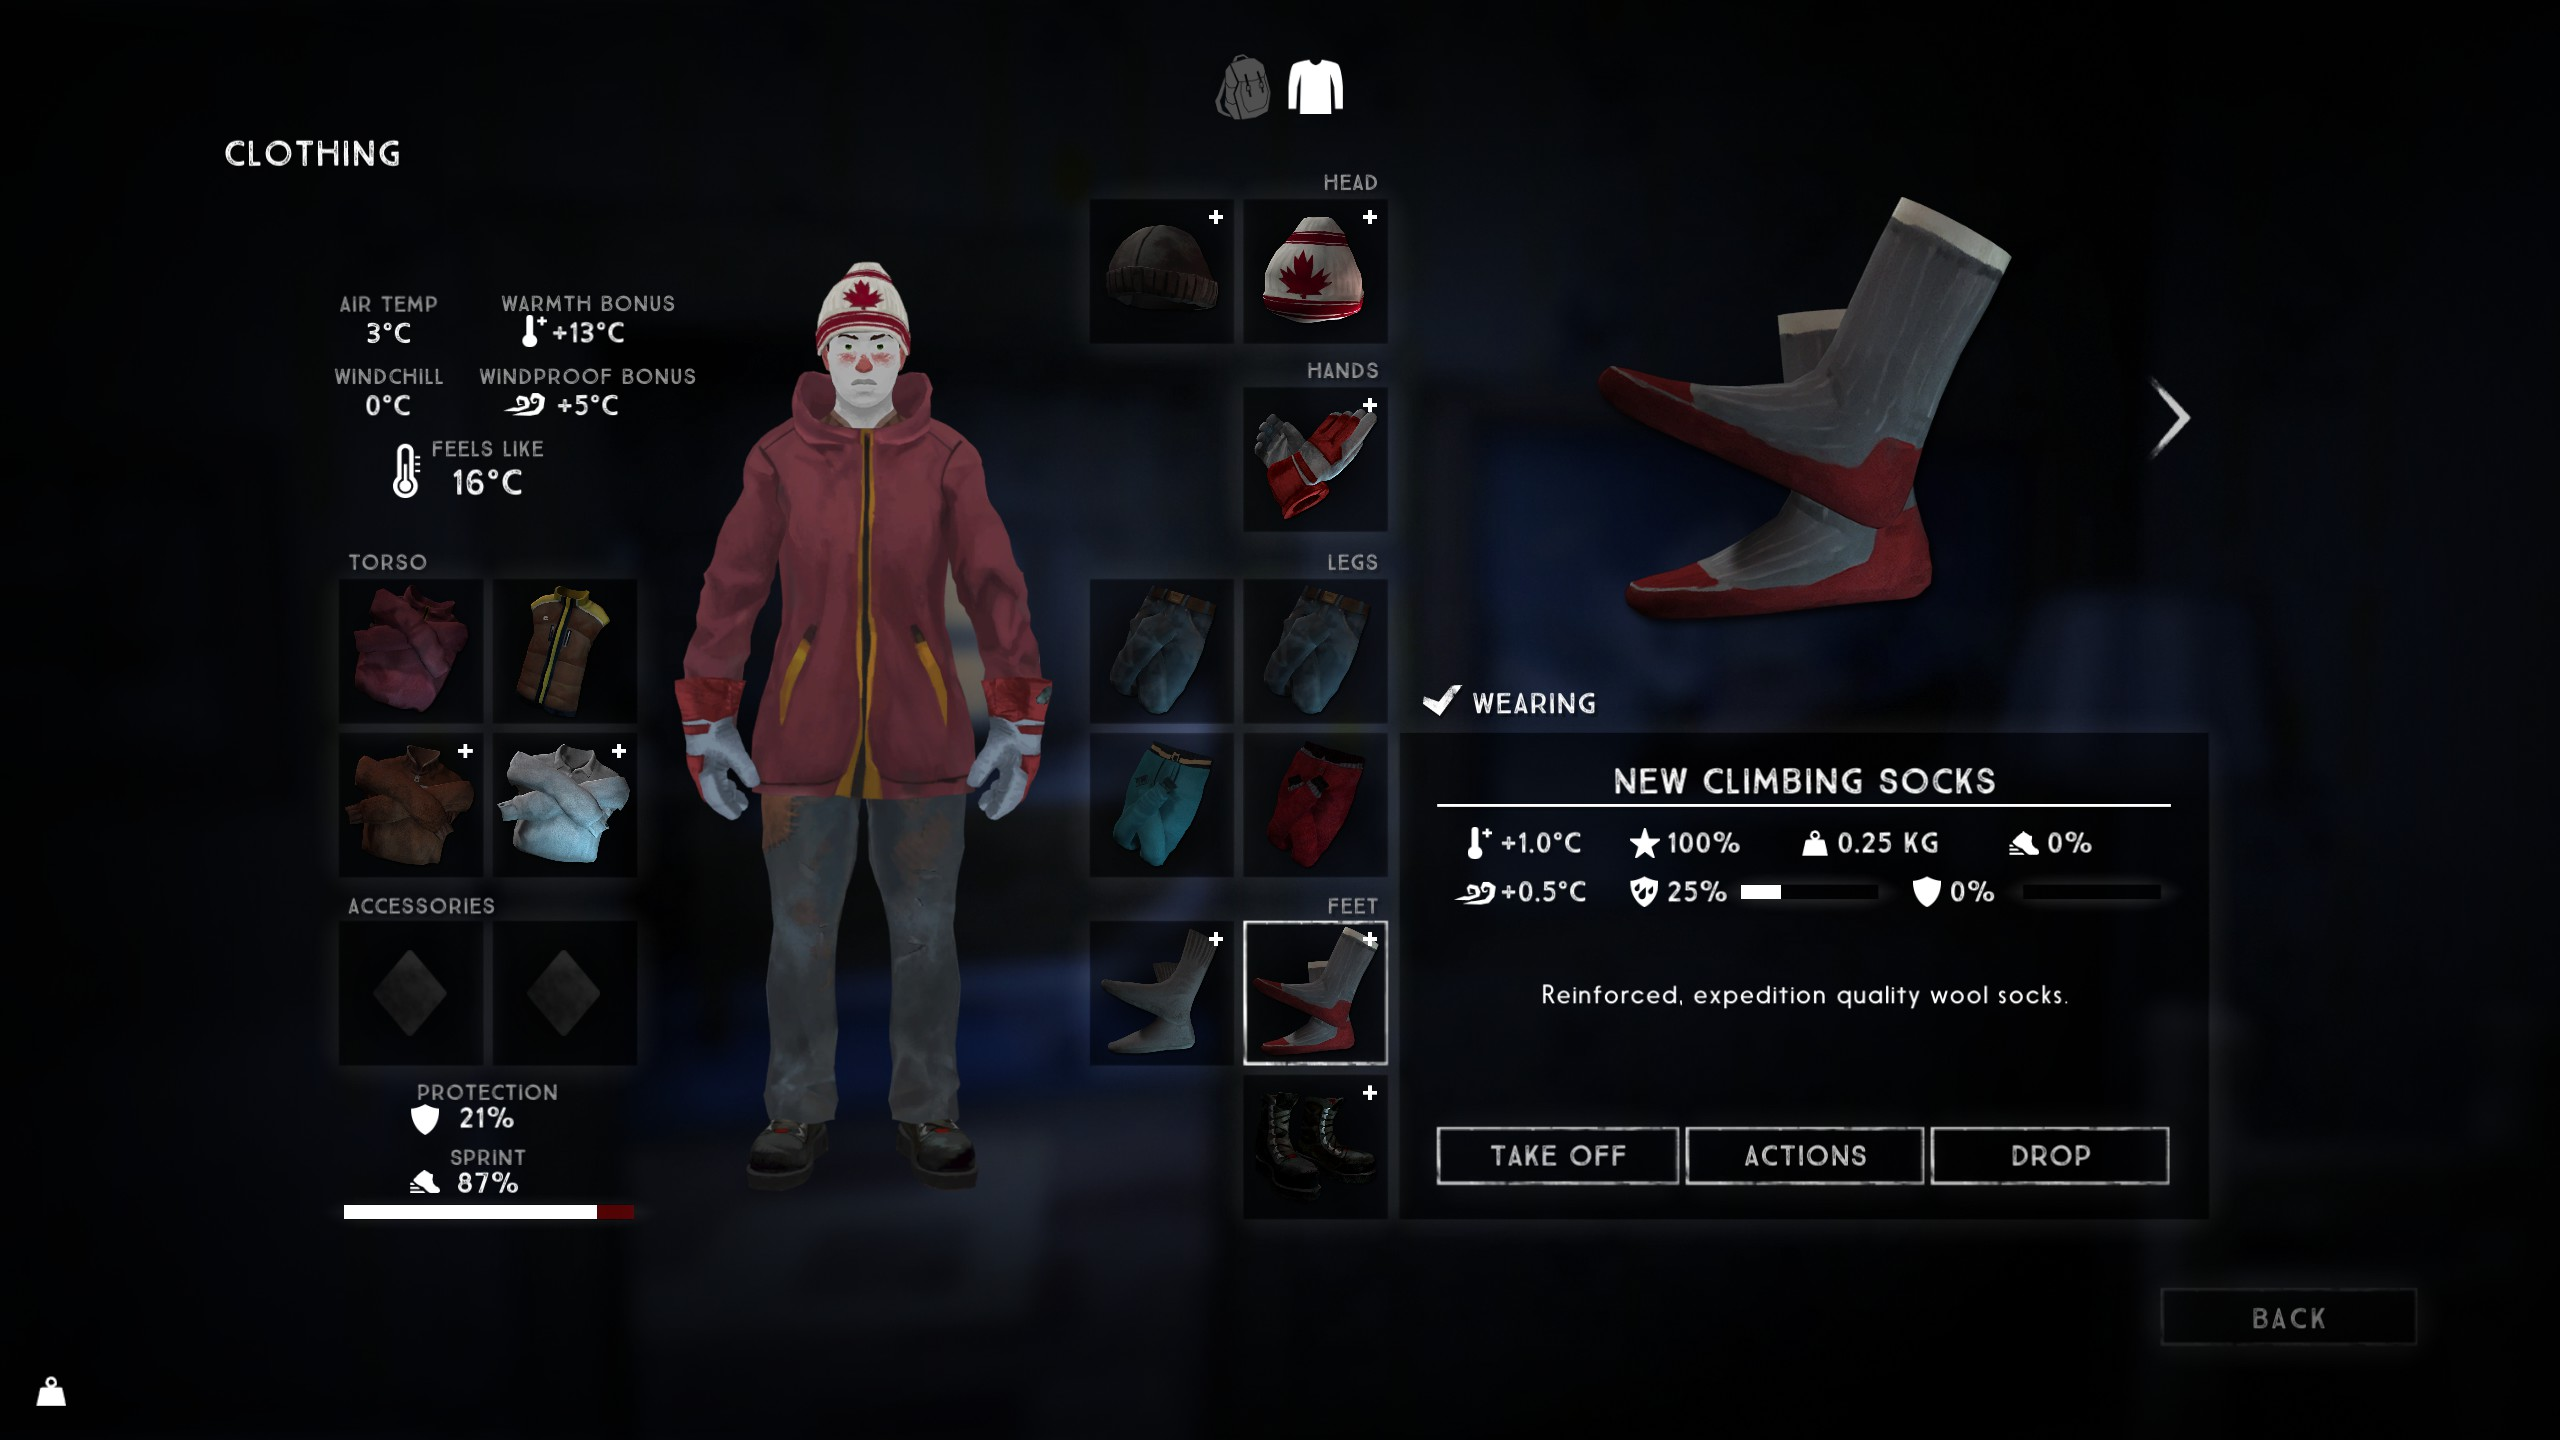 Put two pairs of Climbing Socks on your feet in The Long Dark and harvest whatever else you find.